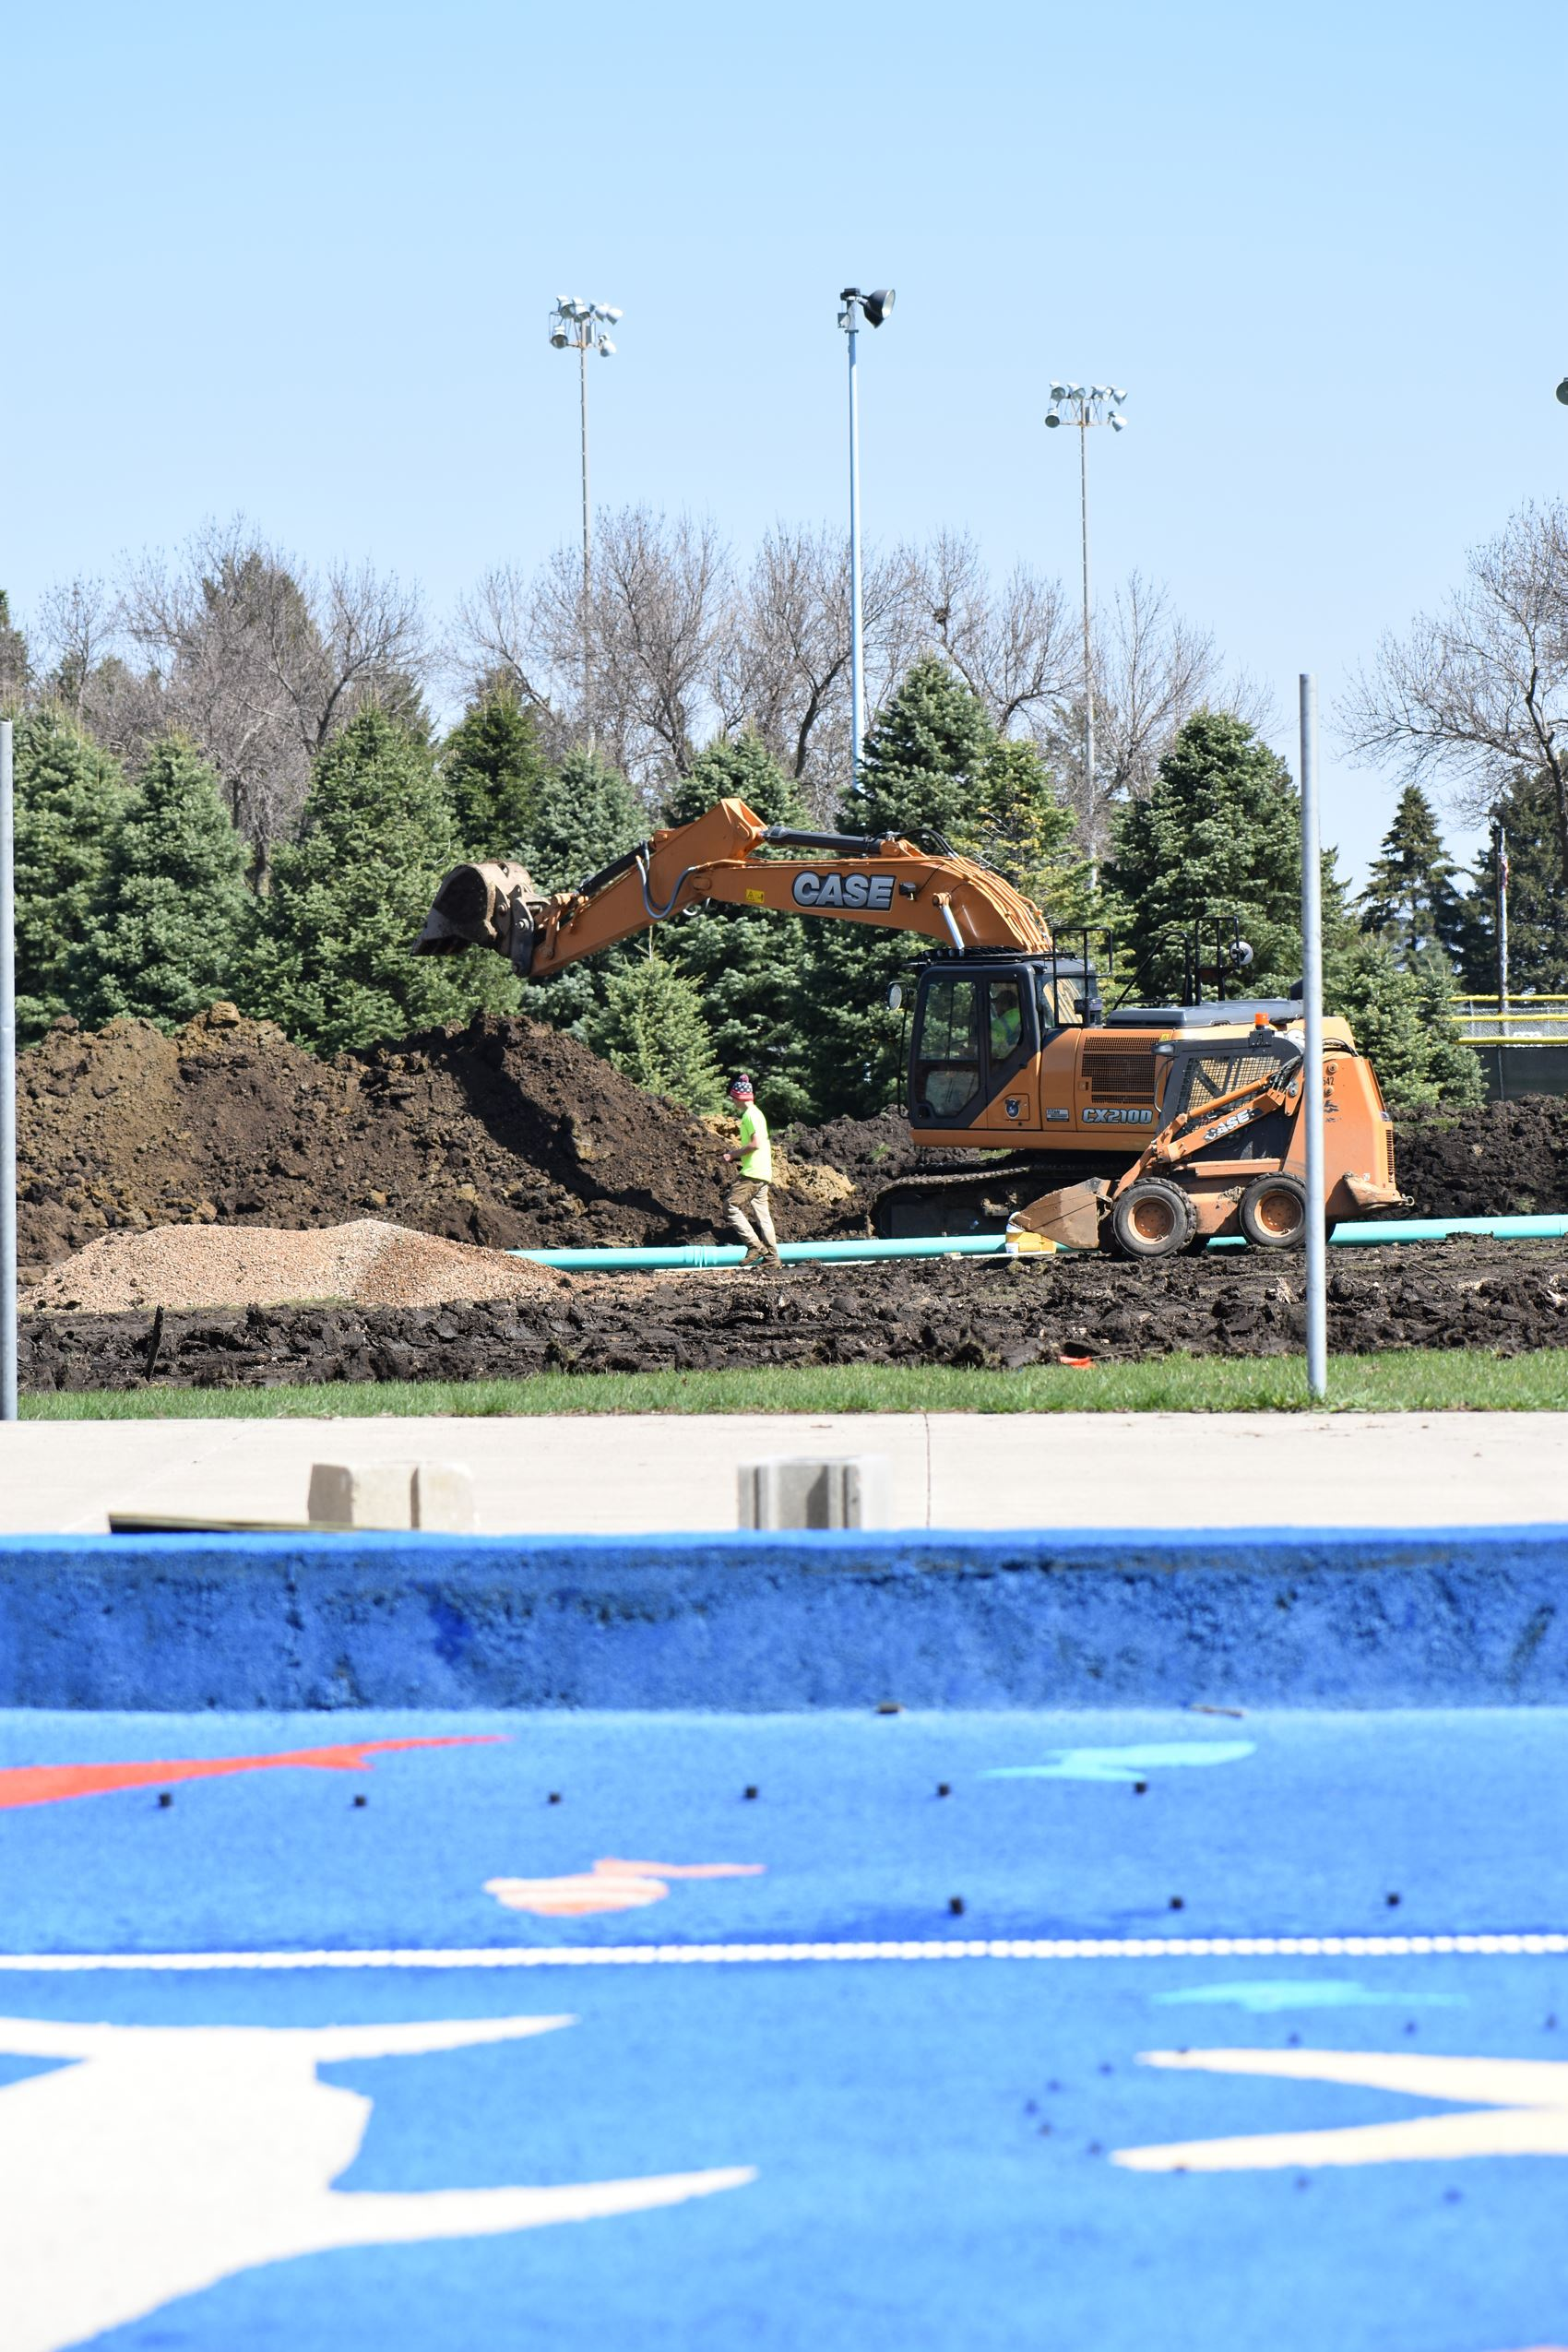 Aquatic center utility work